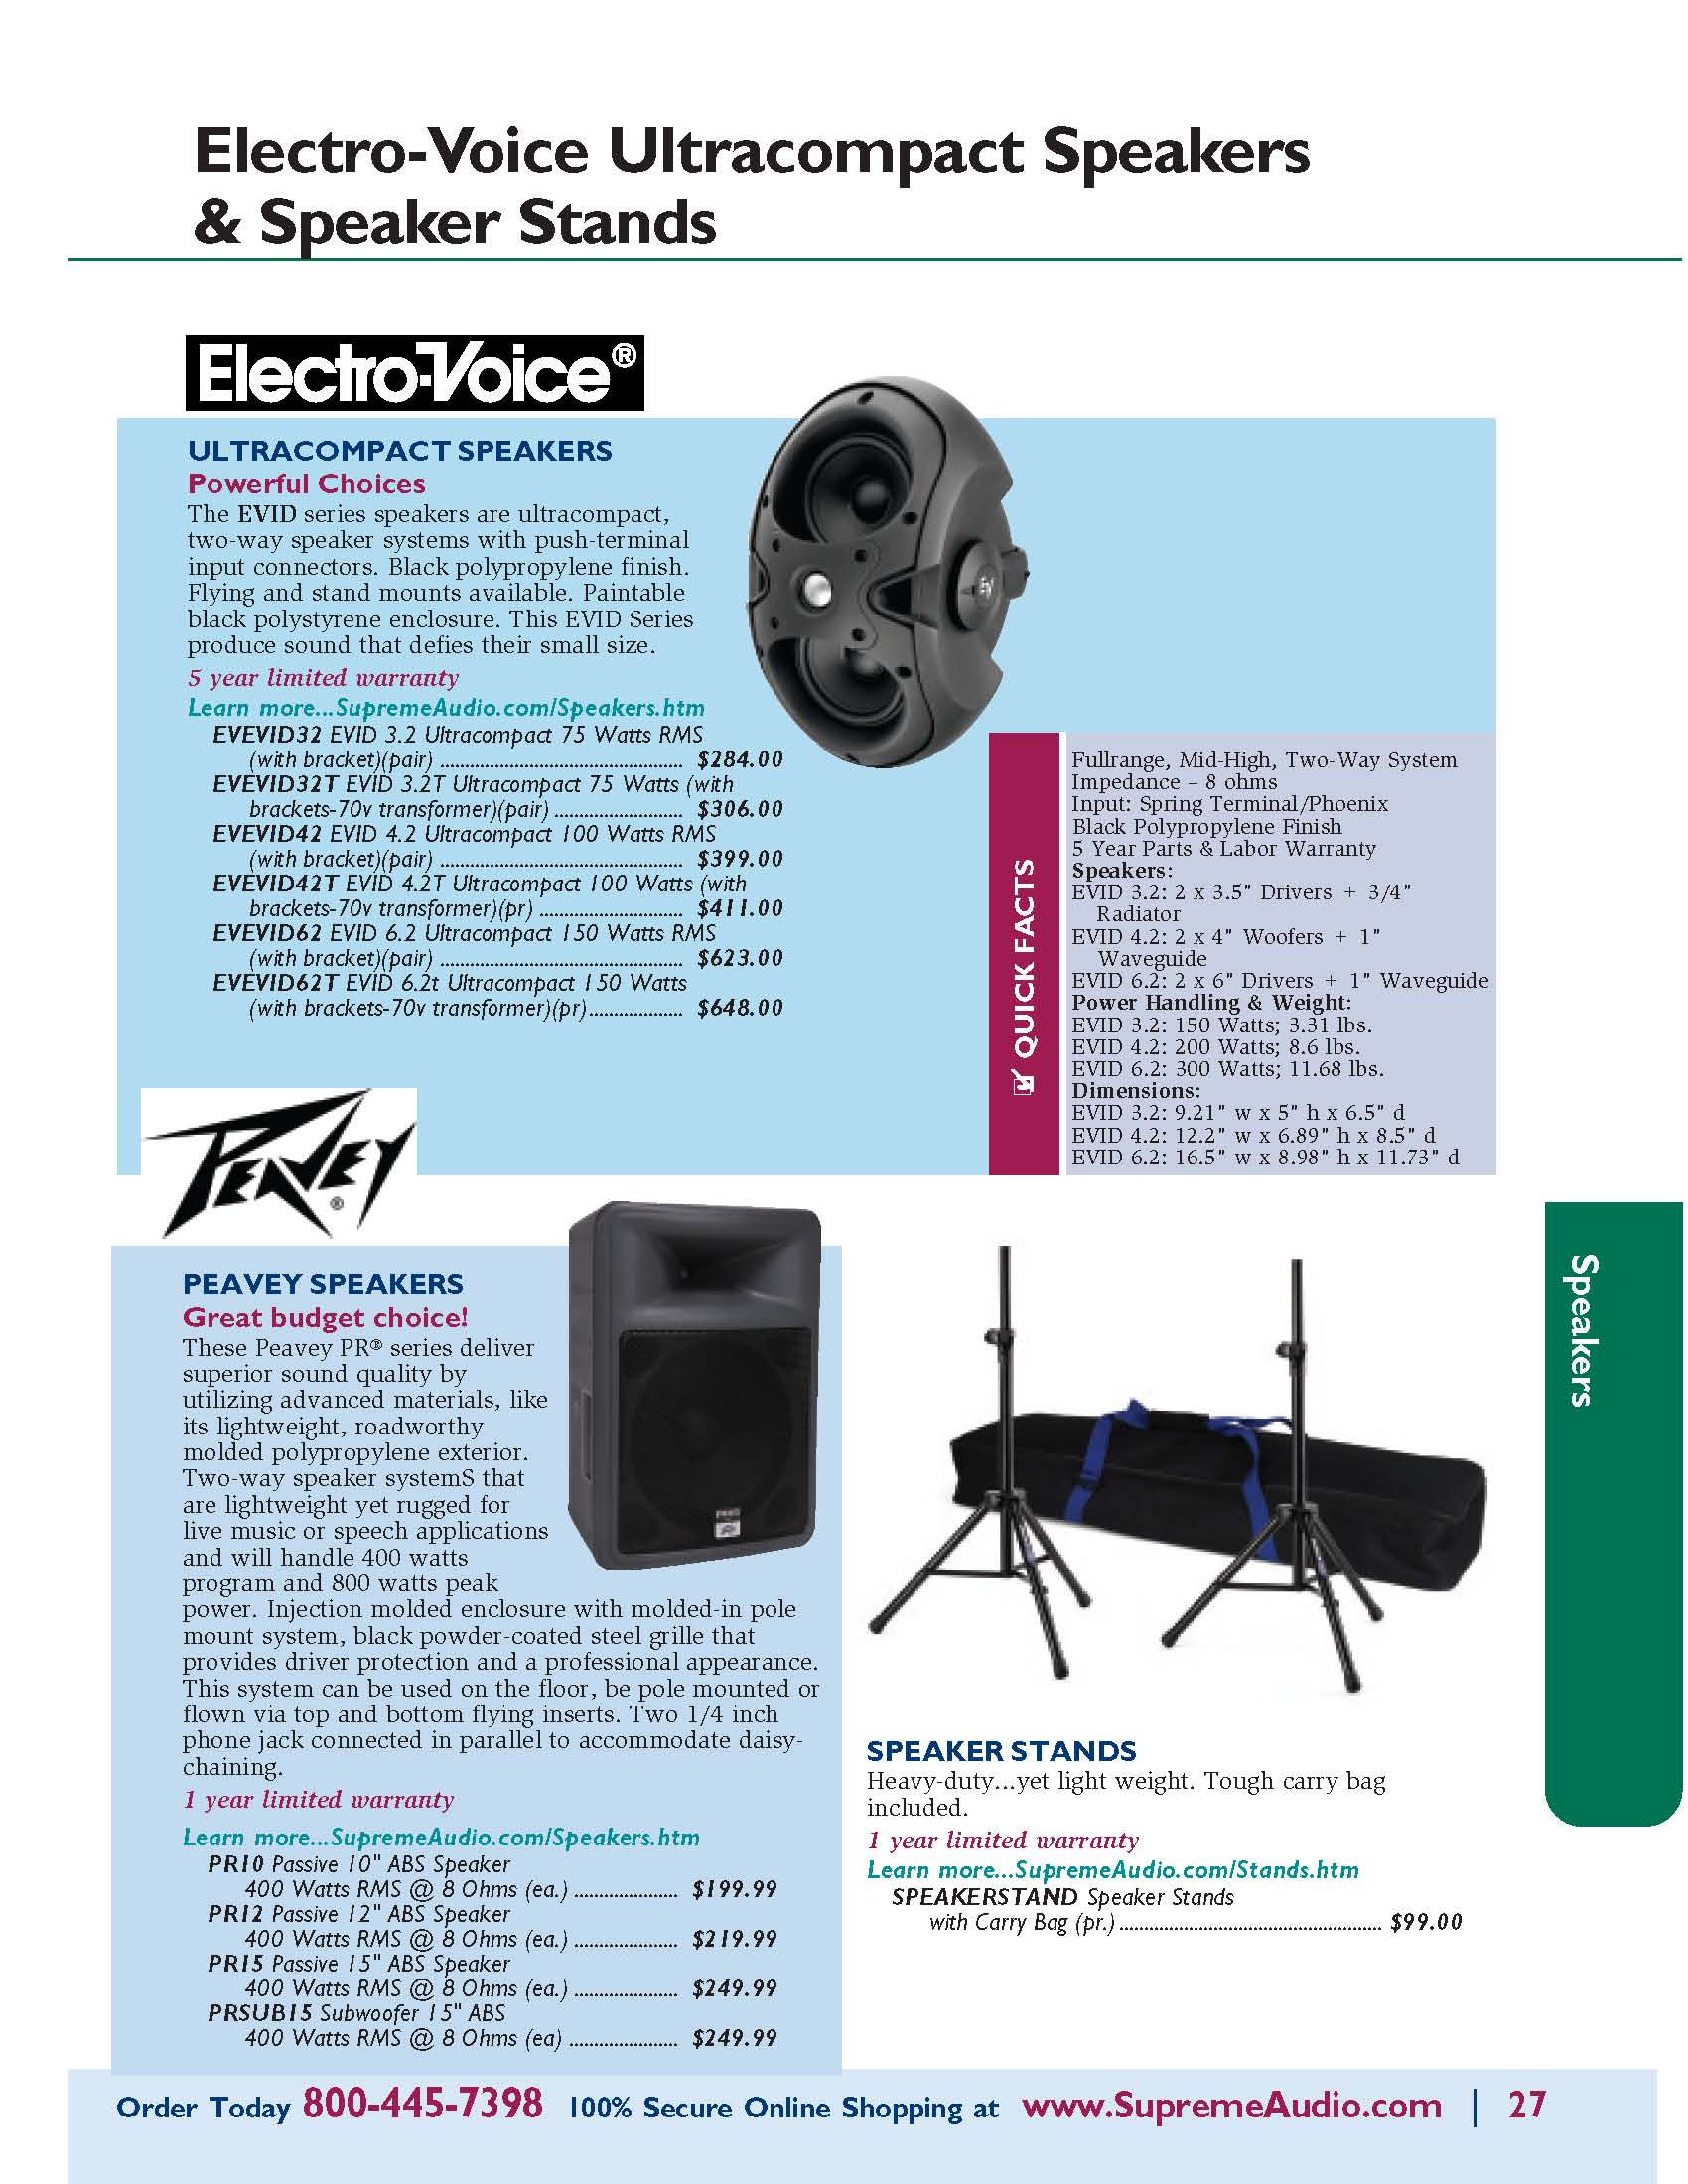 Electro-Voice EVID & Peavey Speakers & Speaker Stands